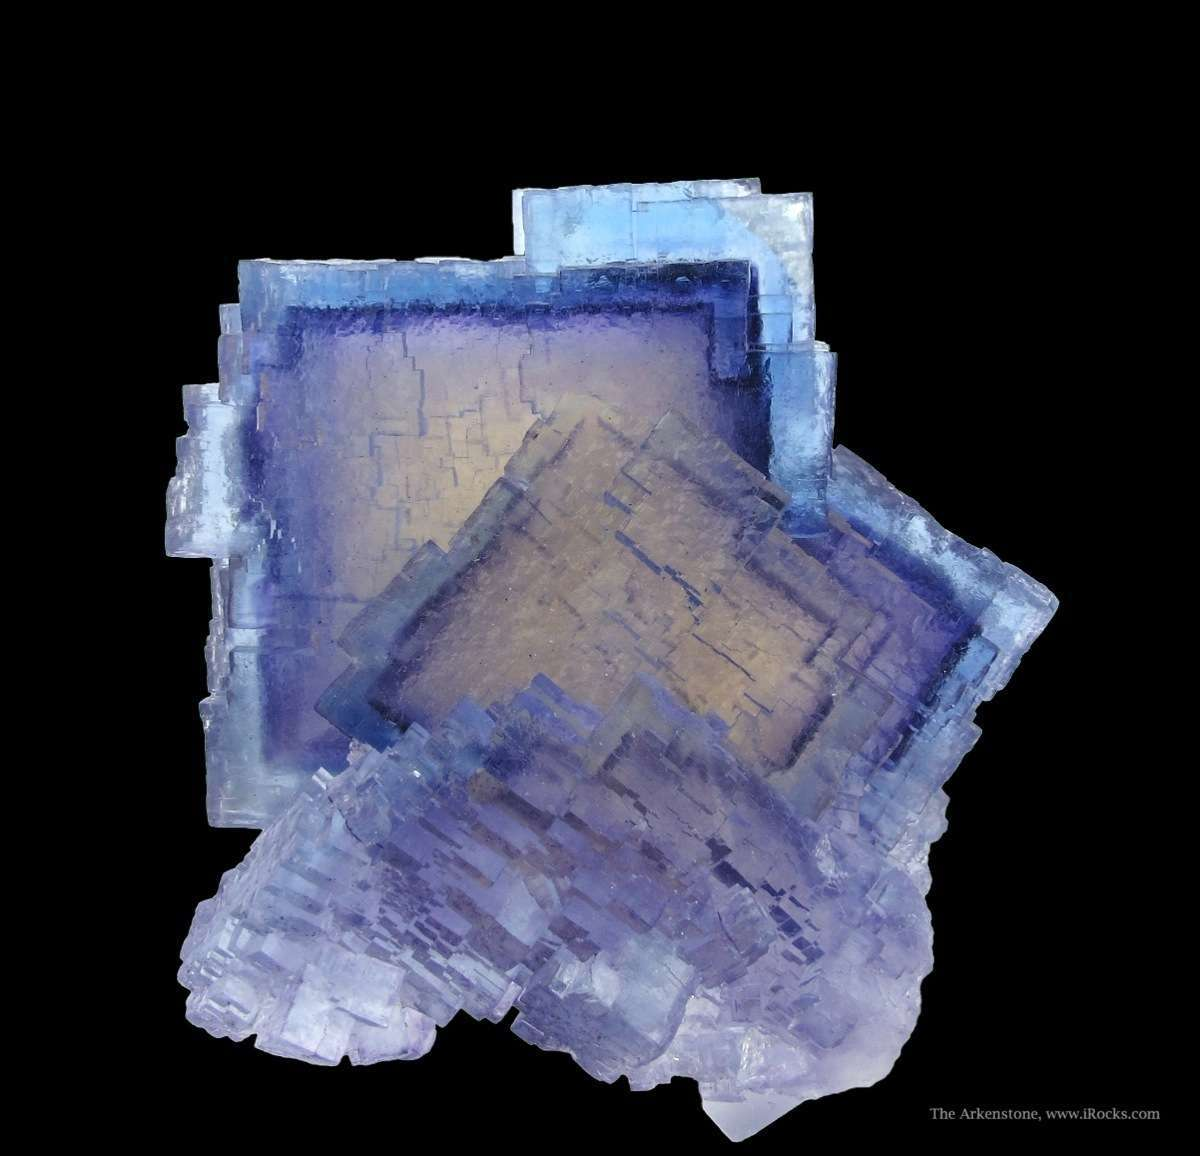 Excellent zoning unusual color highlight attractive cluster fluorite